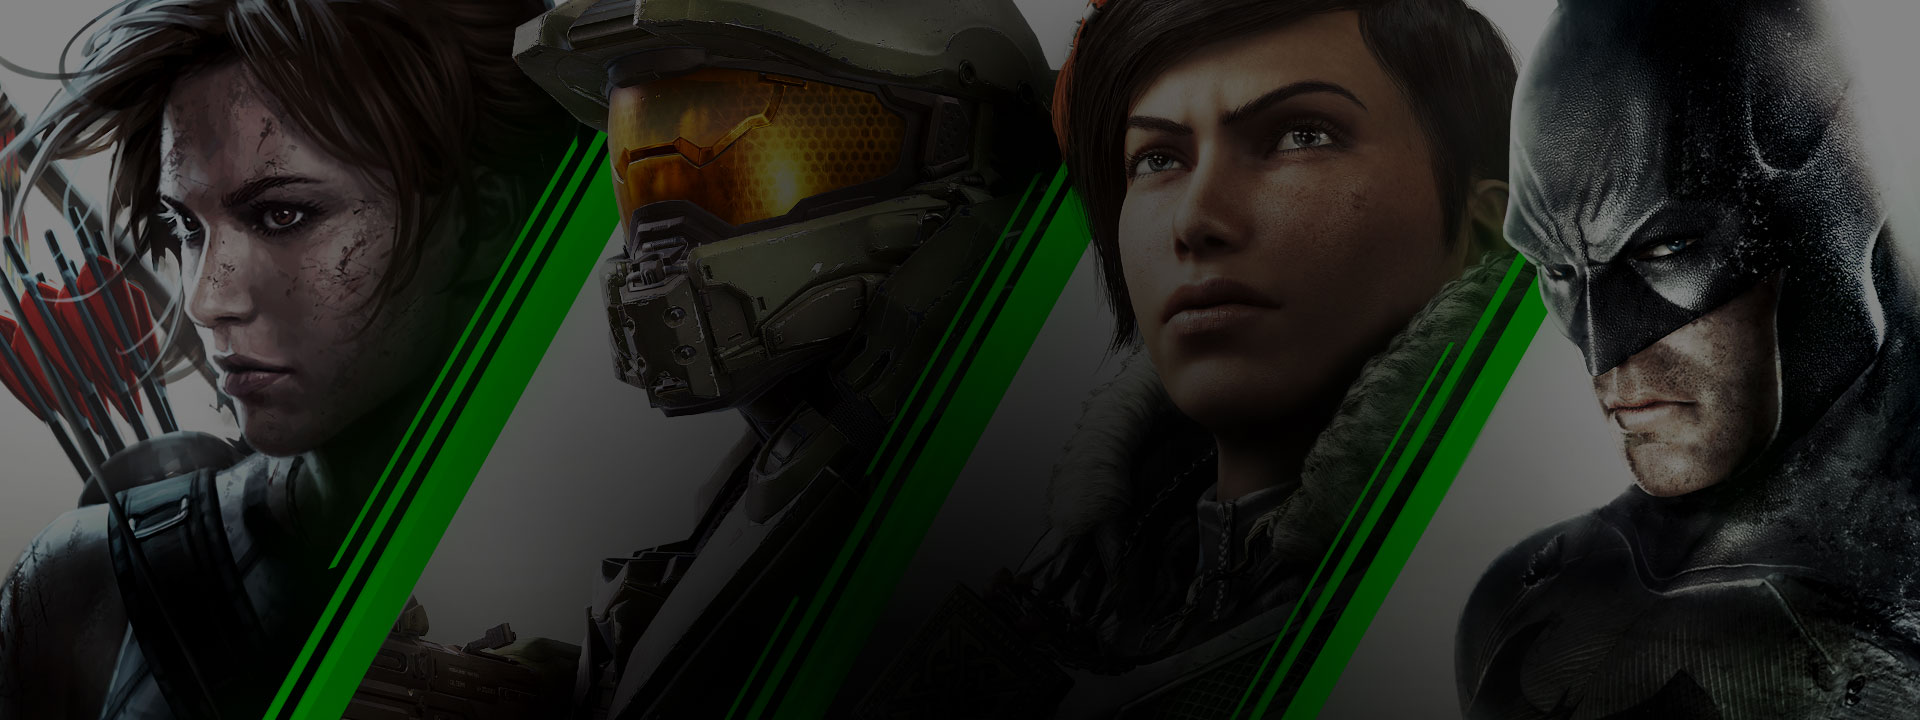 Un collage di personaggi dei giochi per Xbox One. Lara Croft, Master Chief, Kait Diaz e Batman.